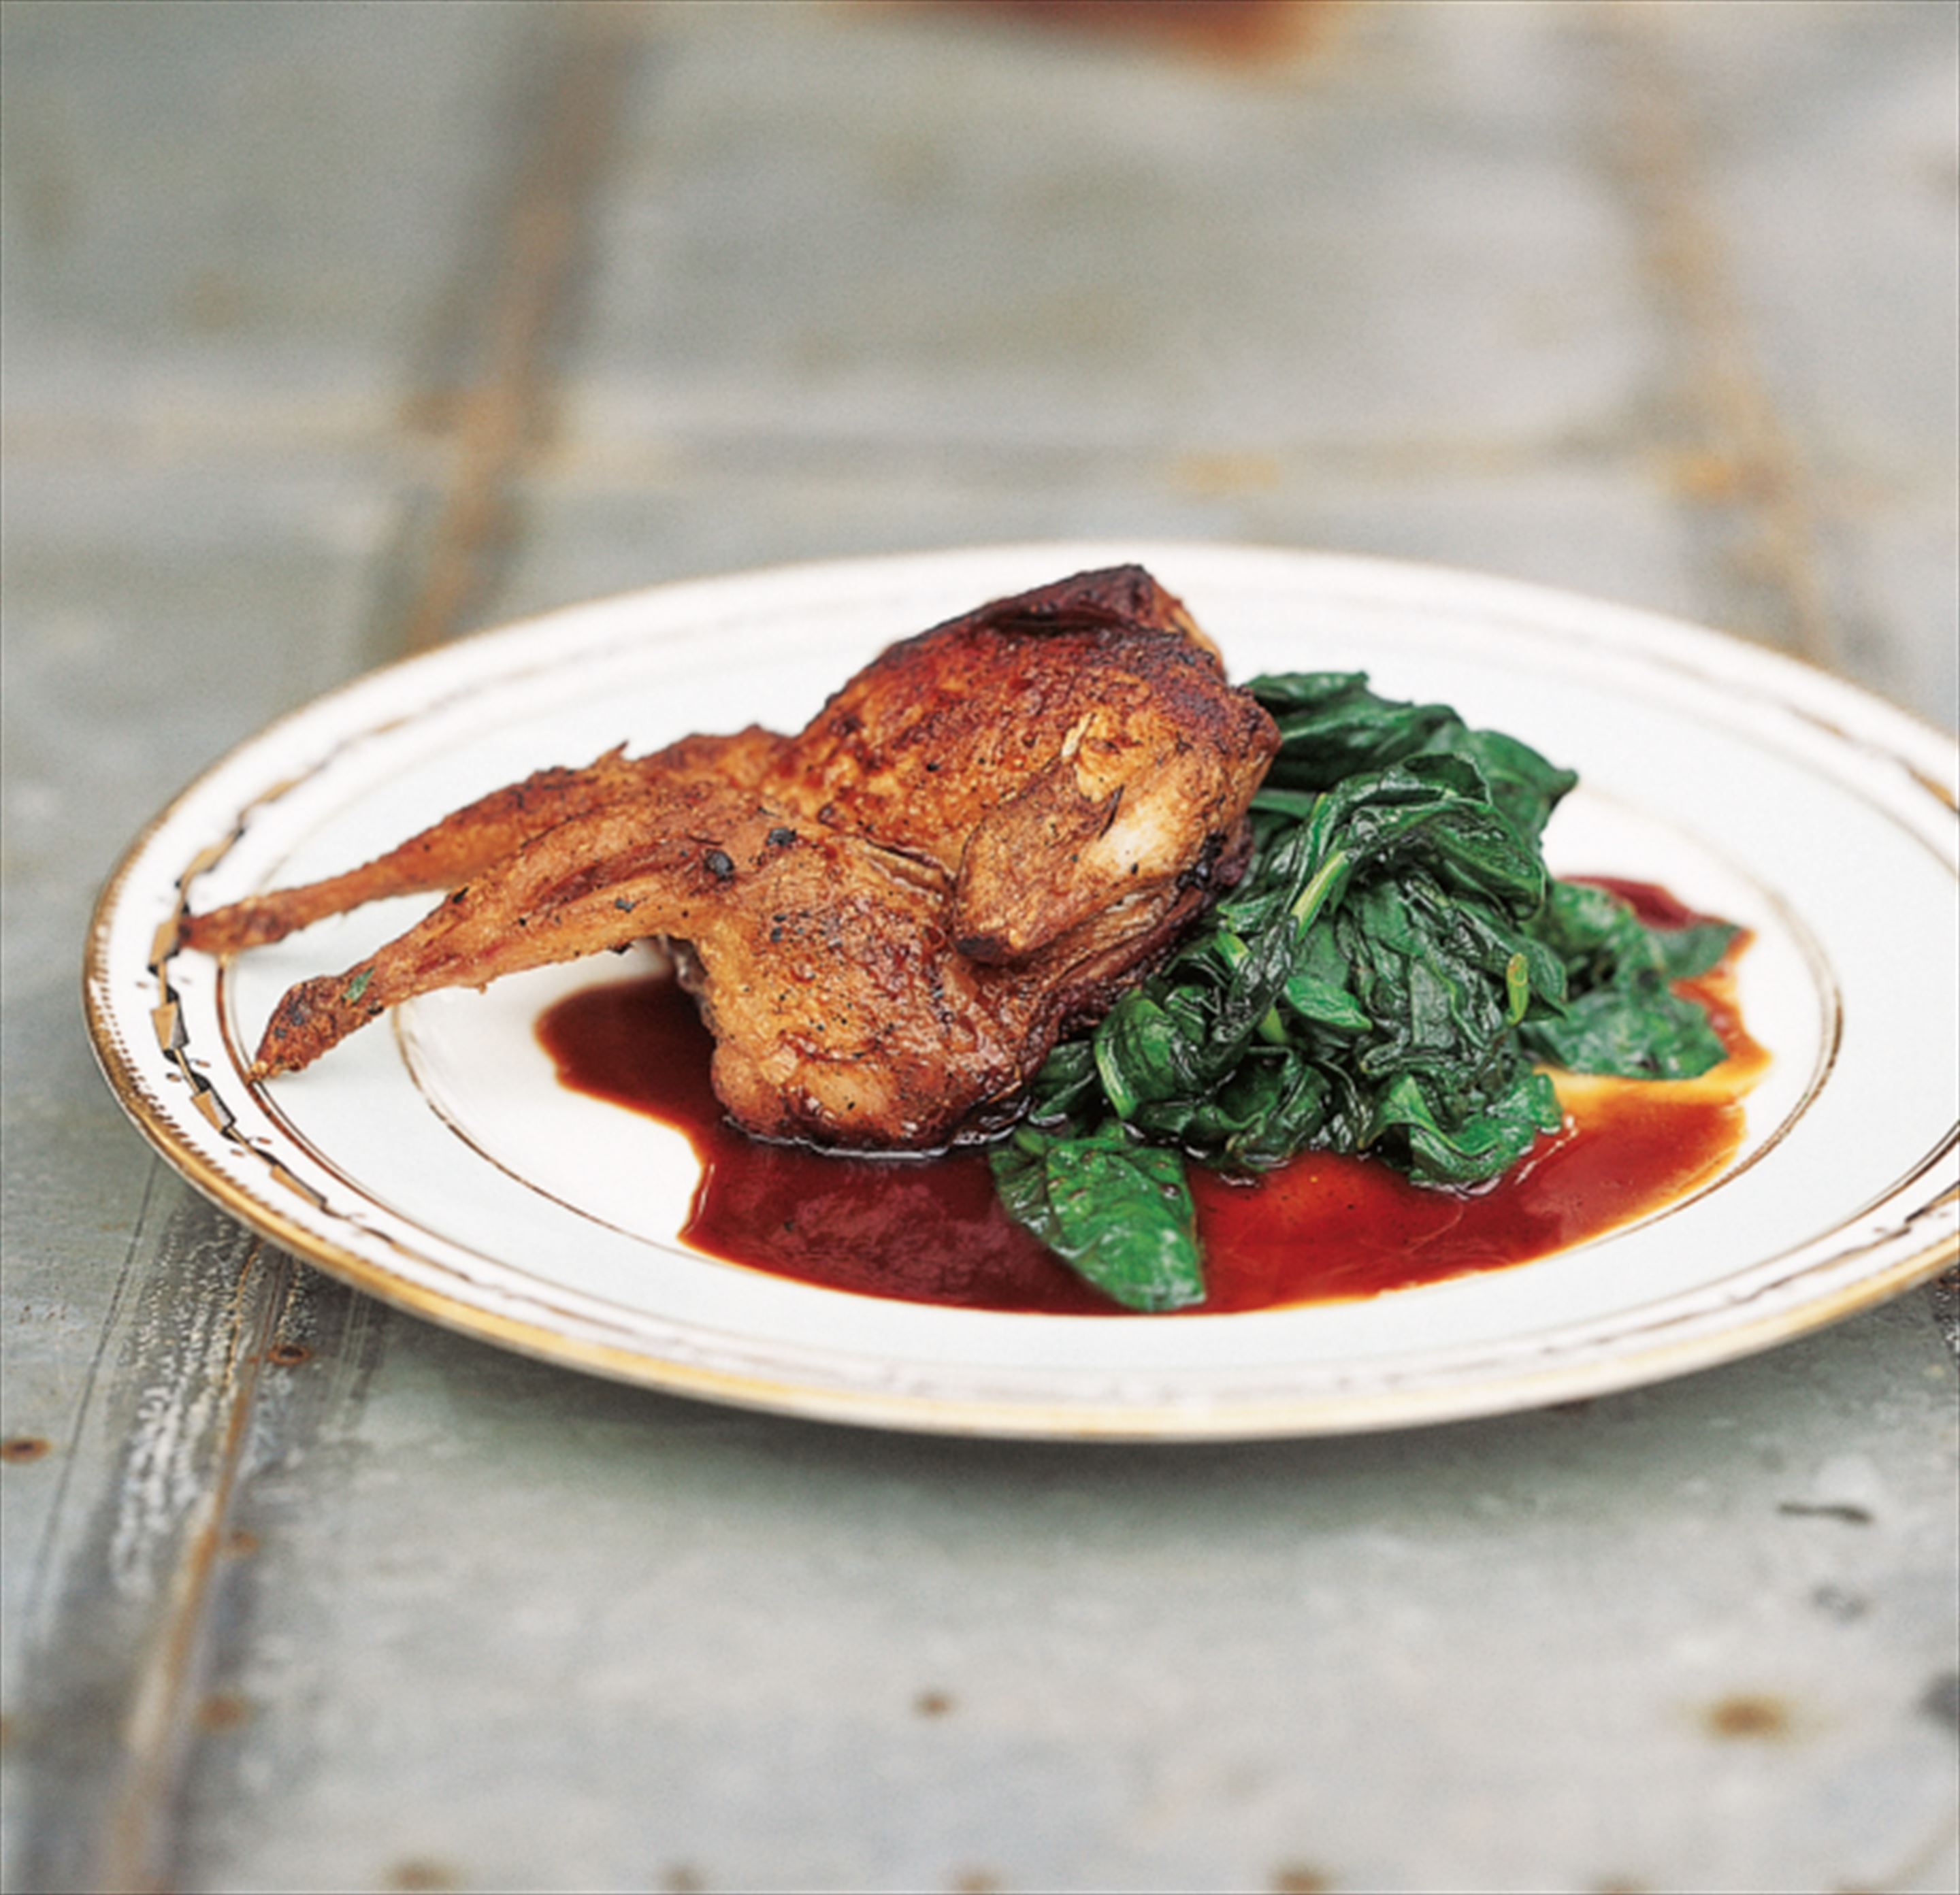 Tea-smoked quail with Chinese five spice and buttered spinach